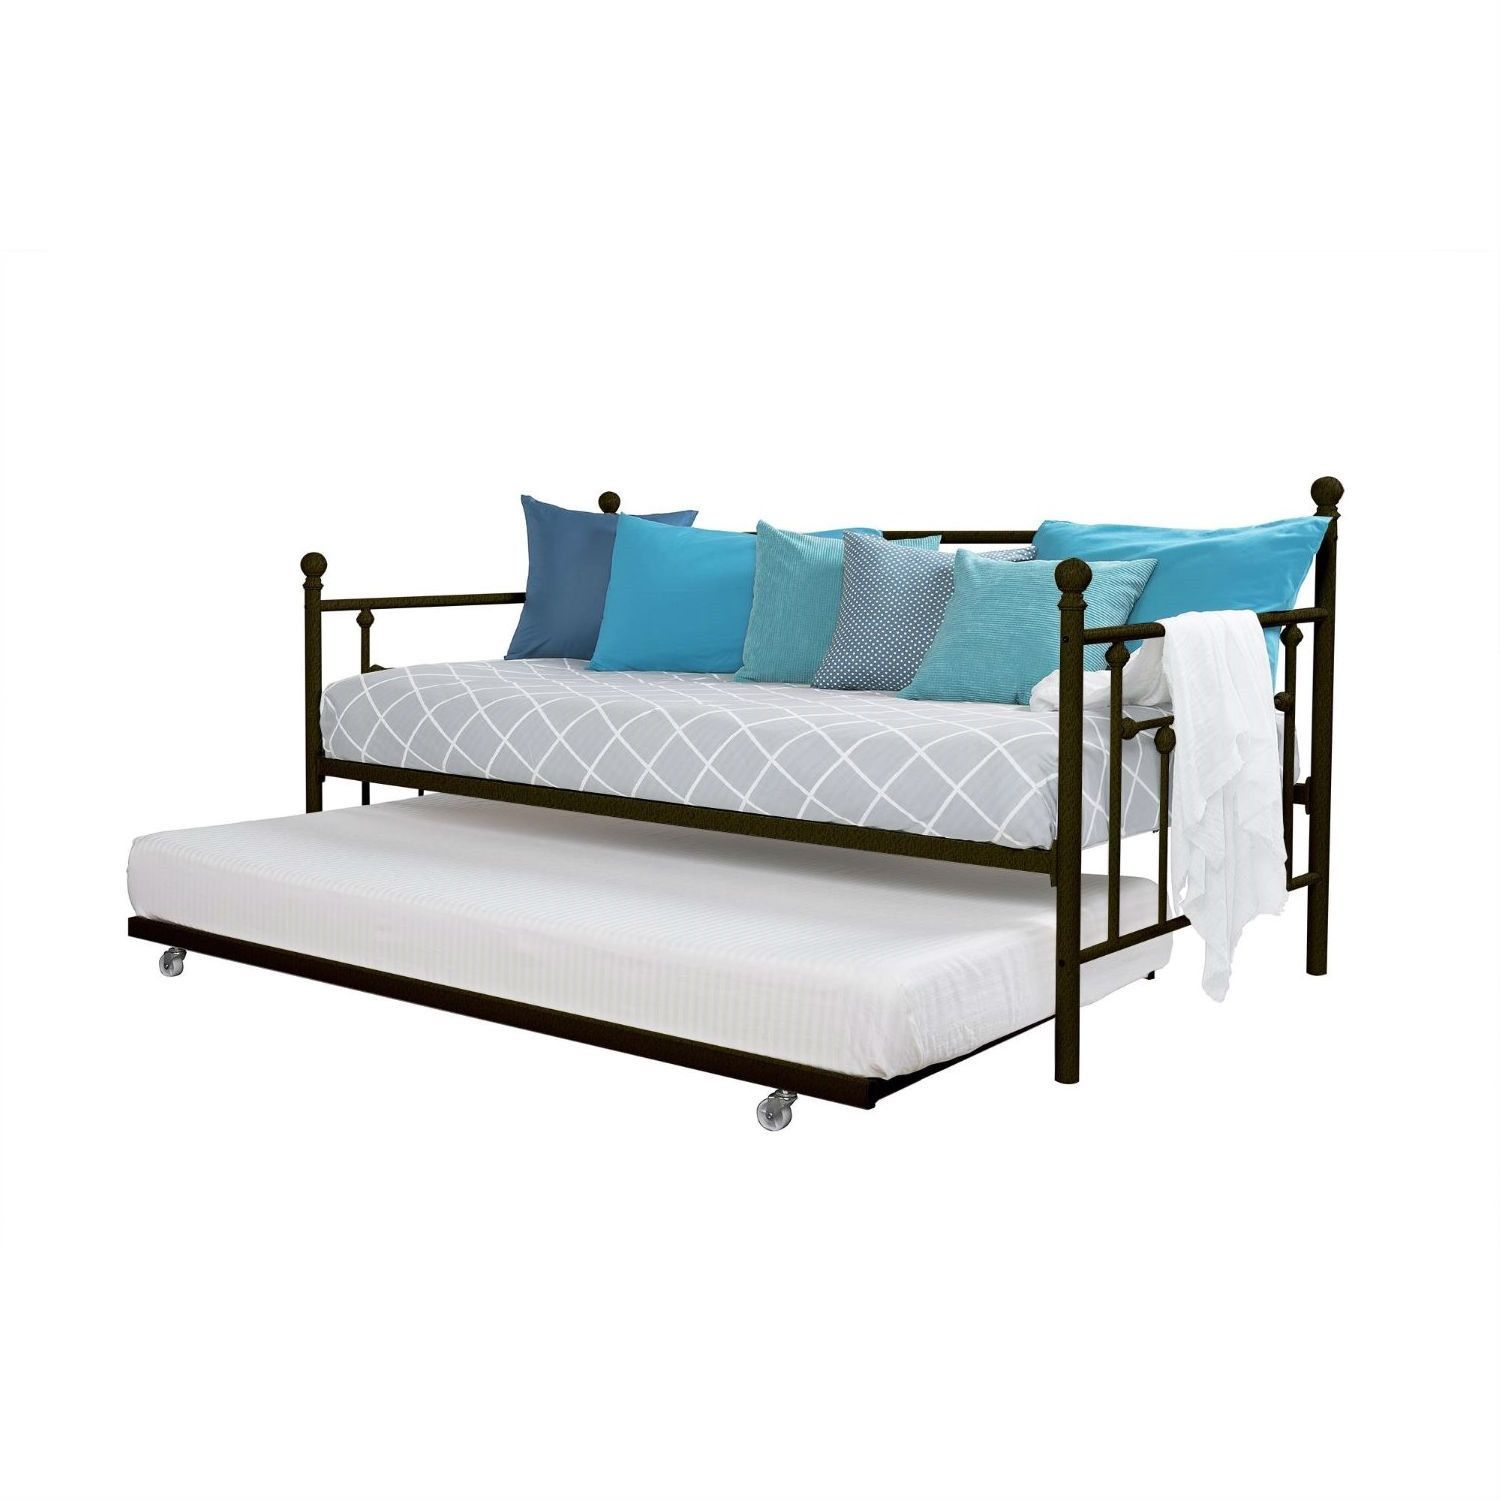 Twin size Metal Daybed with Pull-out Trundle Bed in Bronze Finish ...